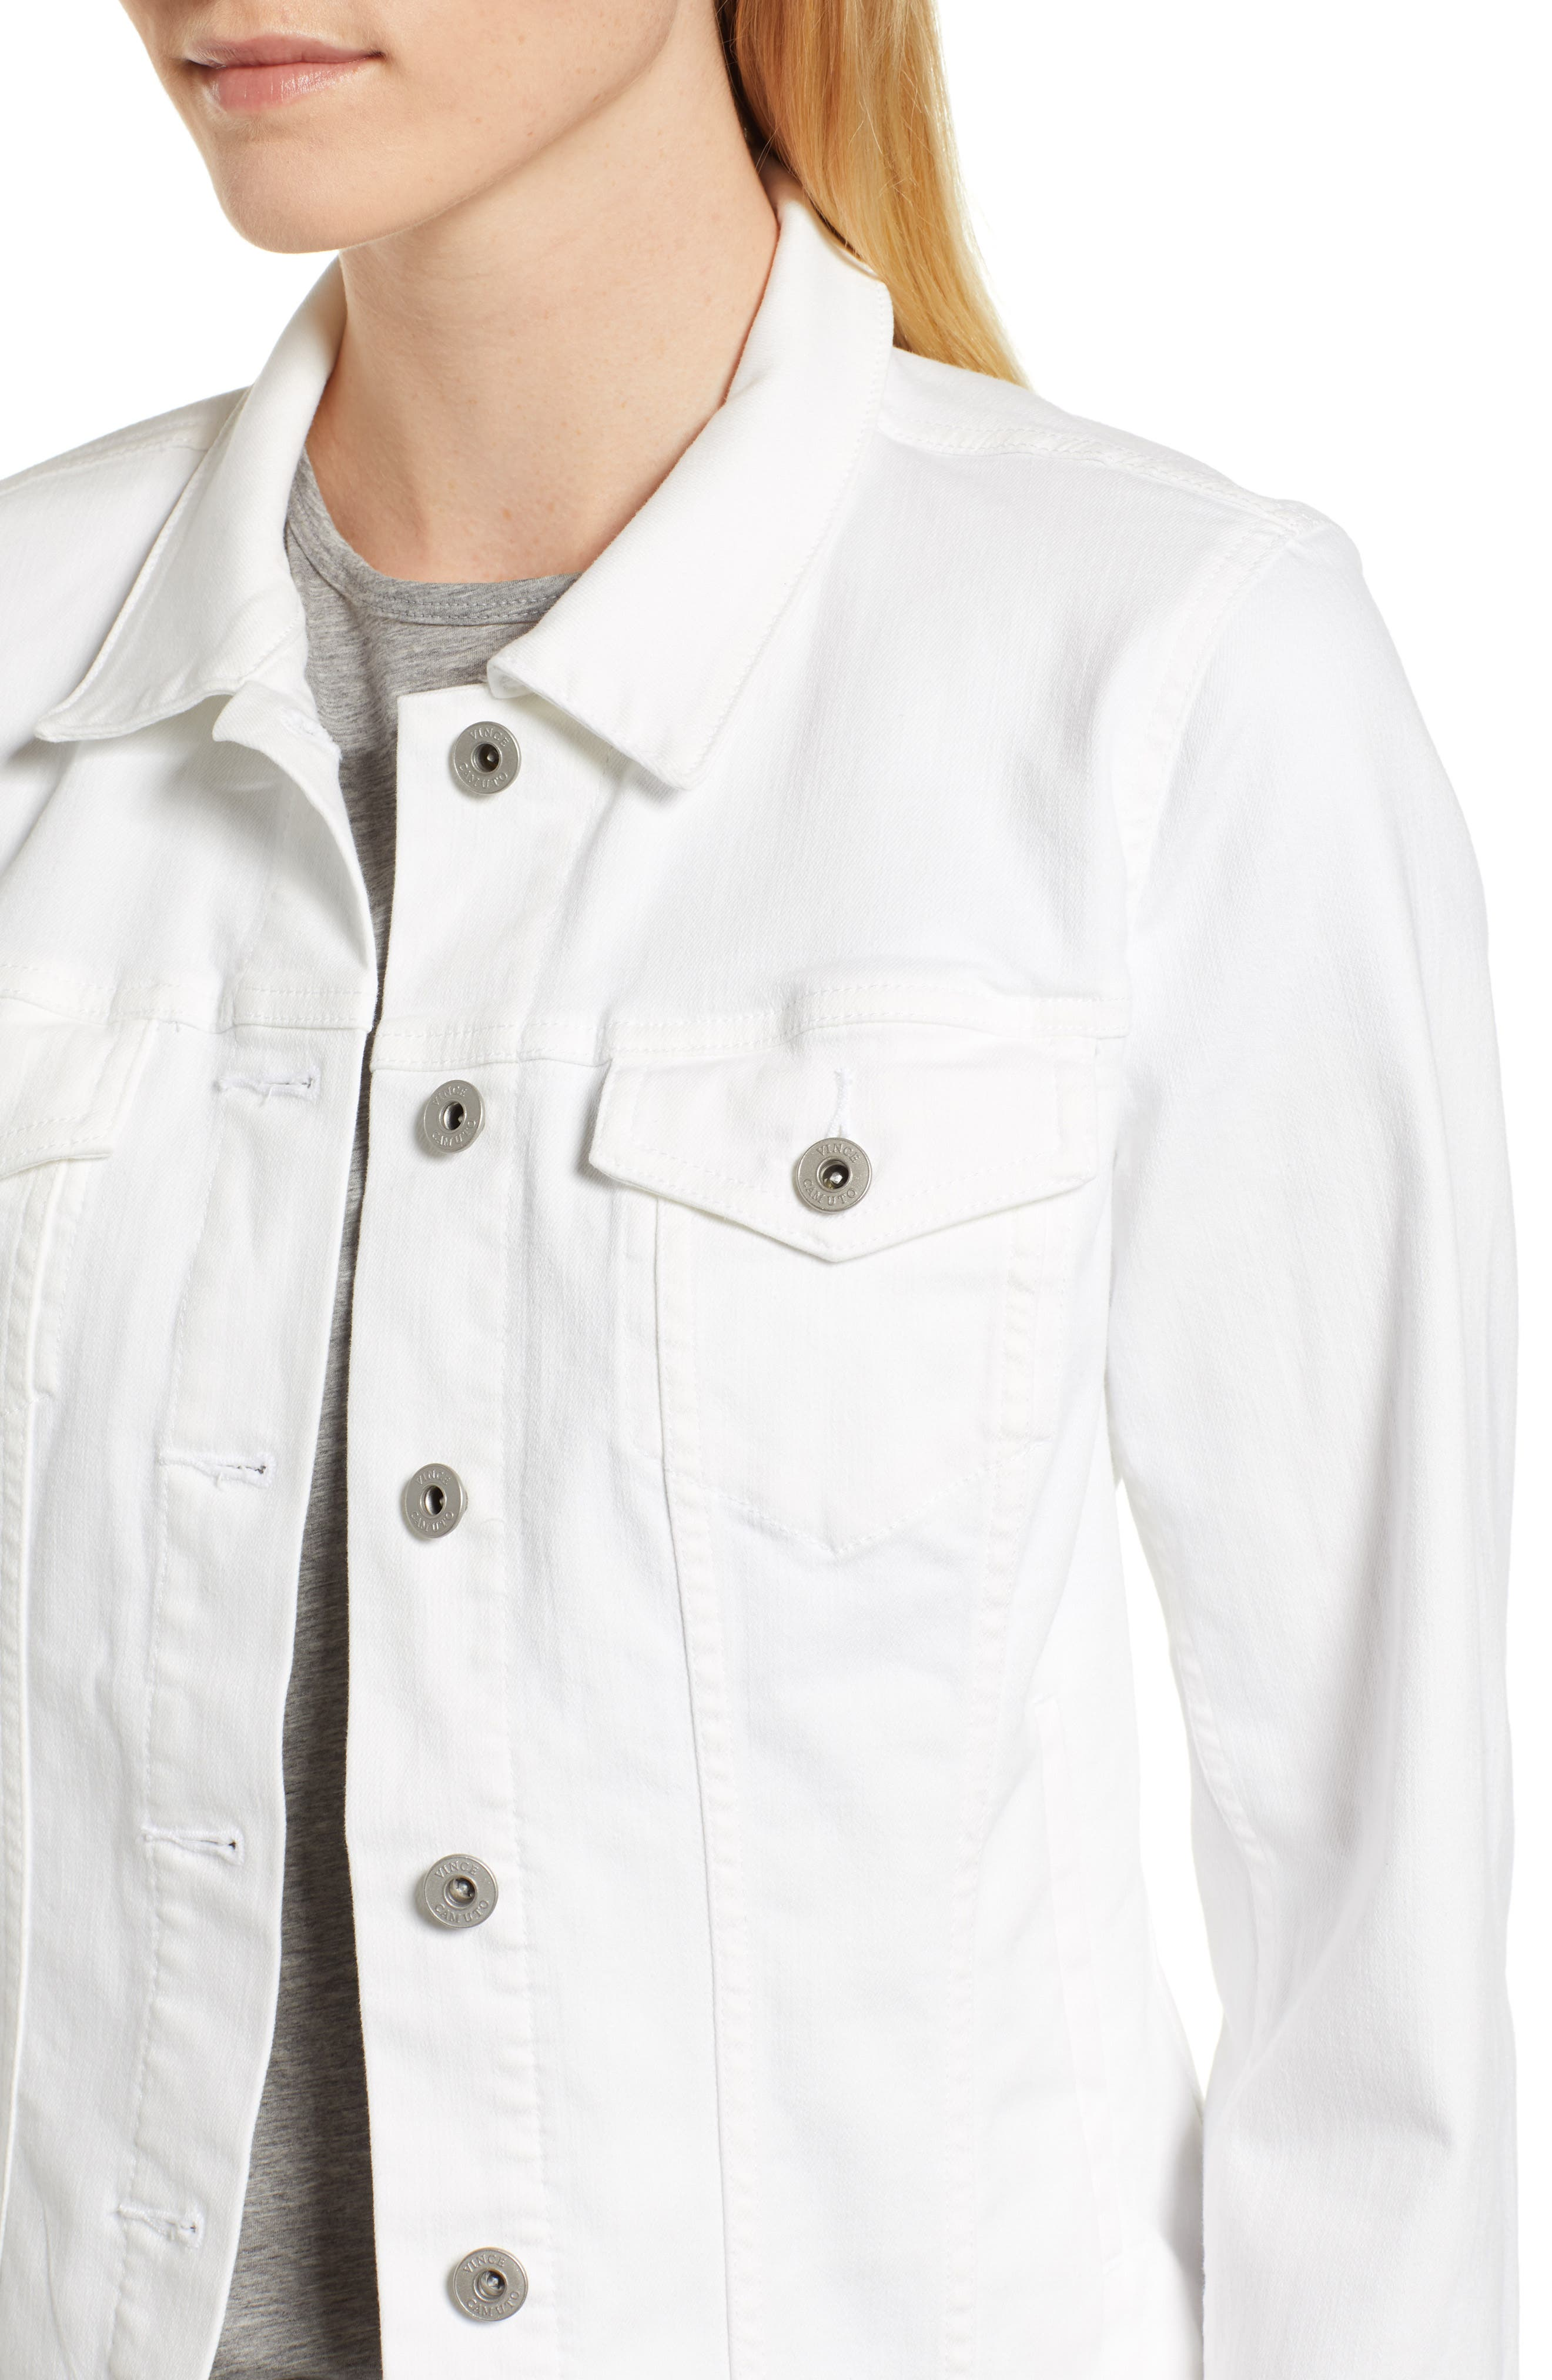 VINCE CAMUTO, Two by Vince Camuto Denim Jacket, Alternate thumbnail 5, color, ULTRA WHITE